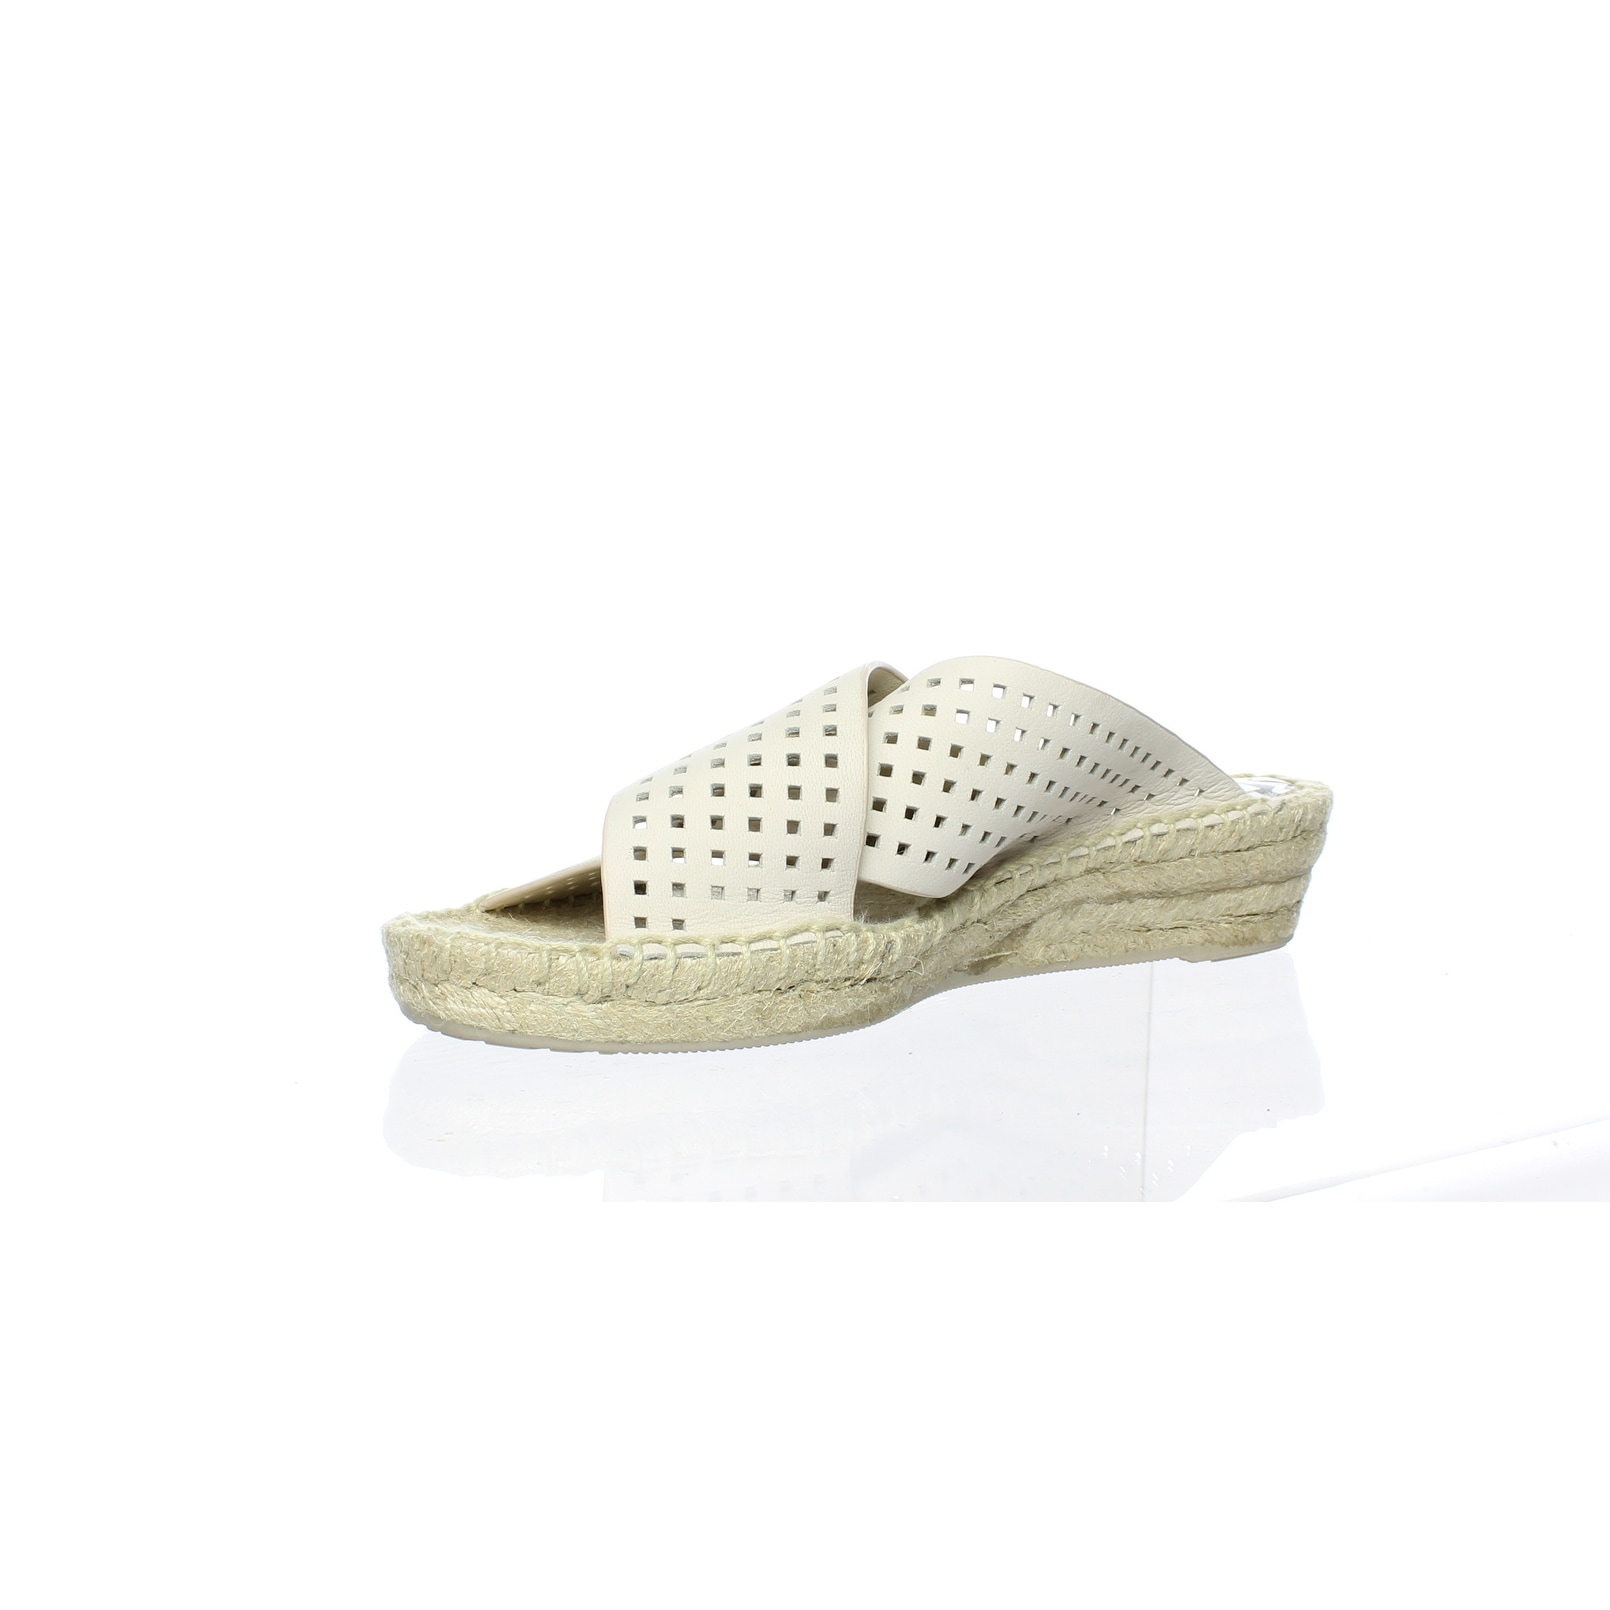 ee8397bc7b1 Shop Dolce Vita Womens Loki Beige Espadrilles Size 6 - On Sale - Free  Shipping On Orders Over  45 - Overstock - 25616829